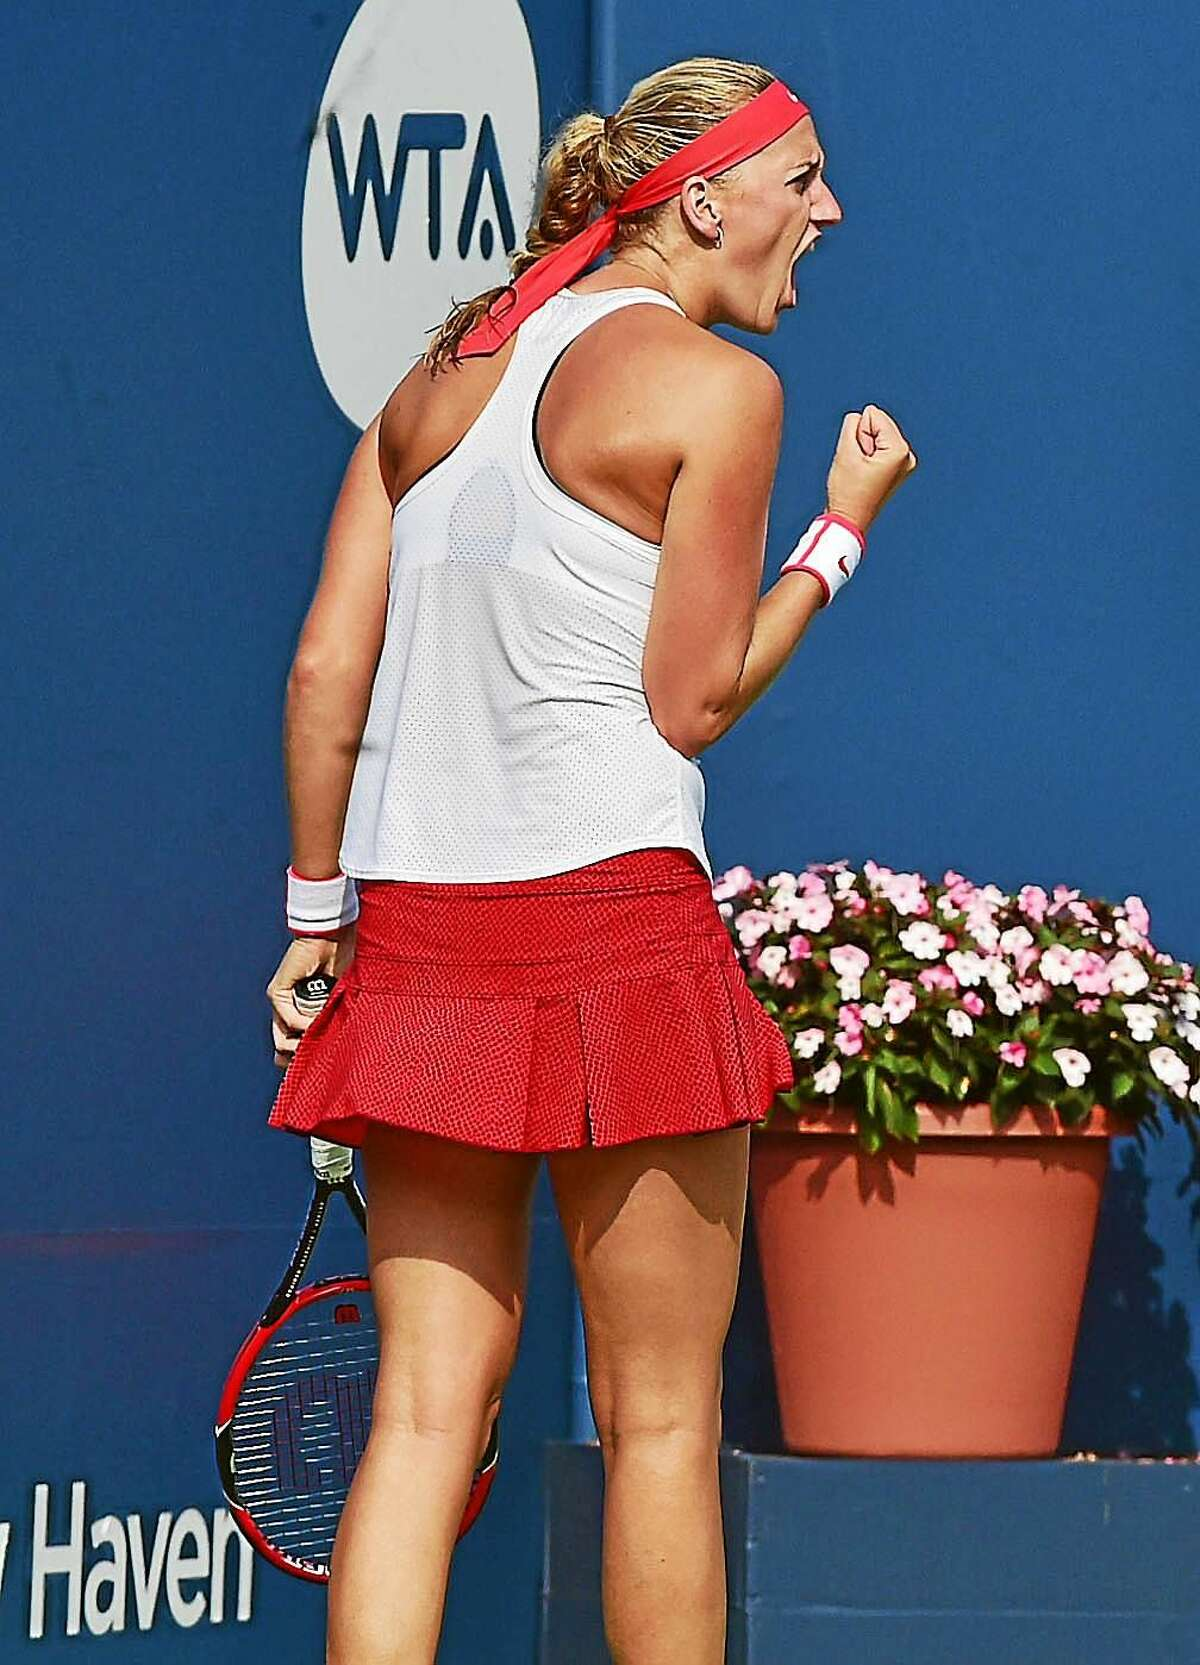 Petra Kvitova will look to become just the second woman (Venus Williams) to win back-to-back at the Connecticut Open and U.S. Open.